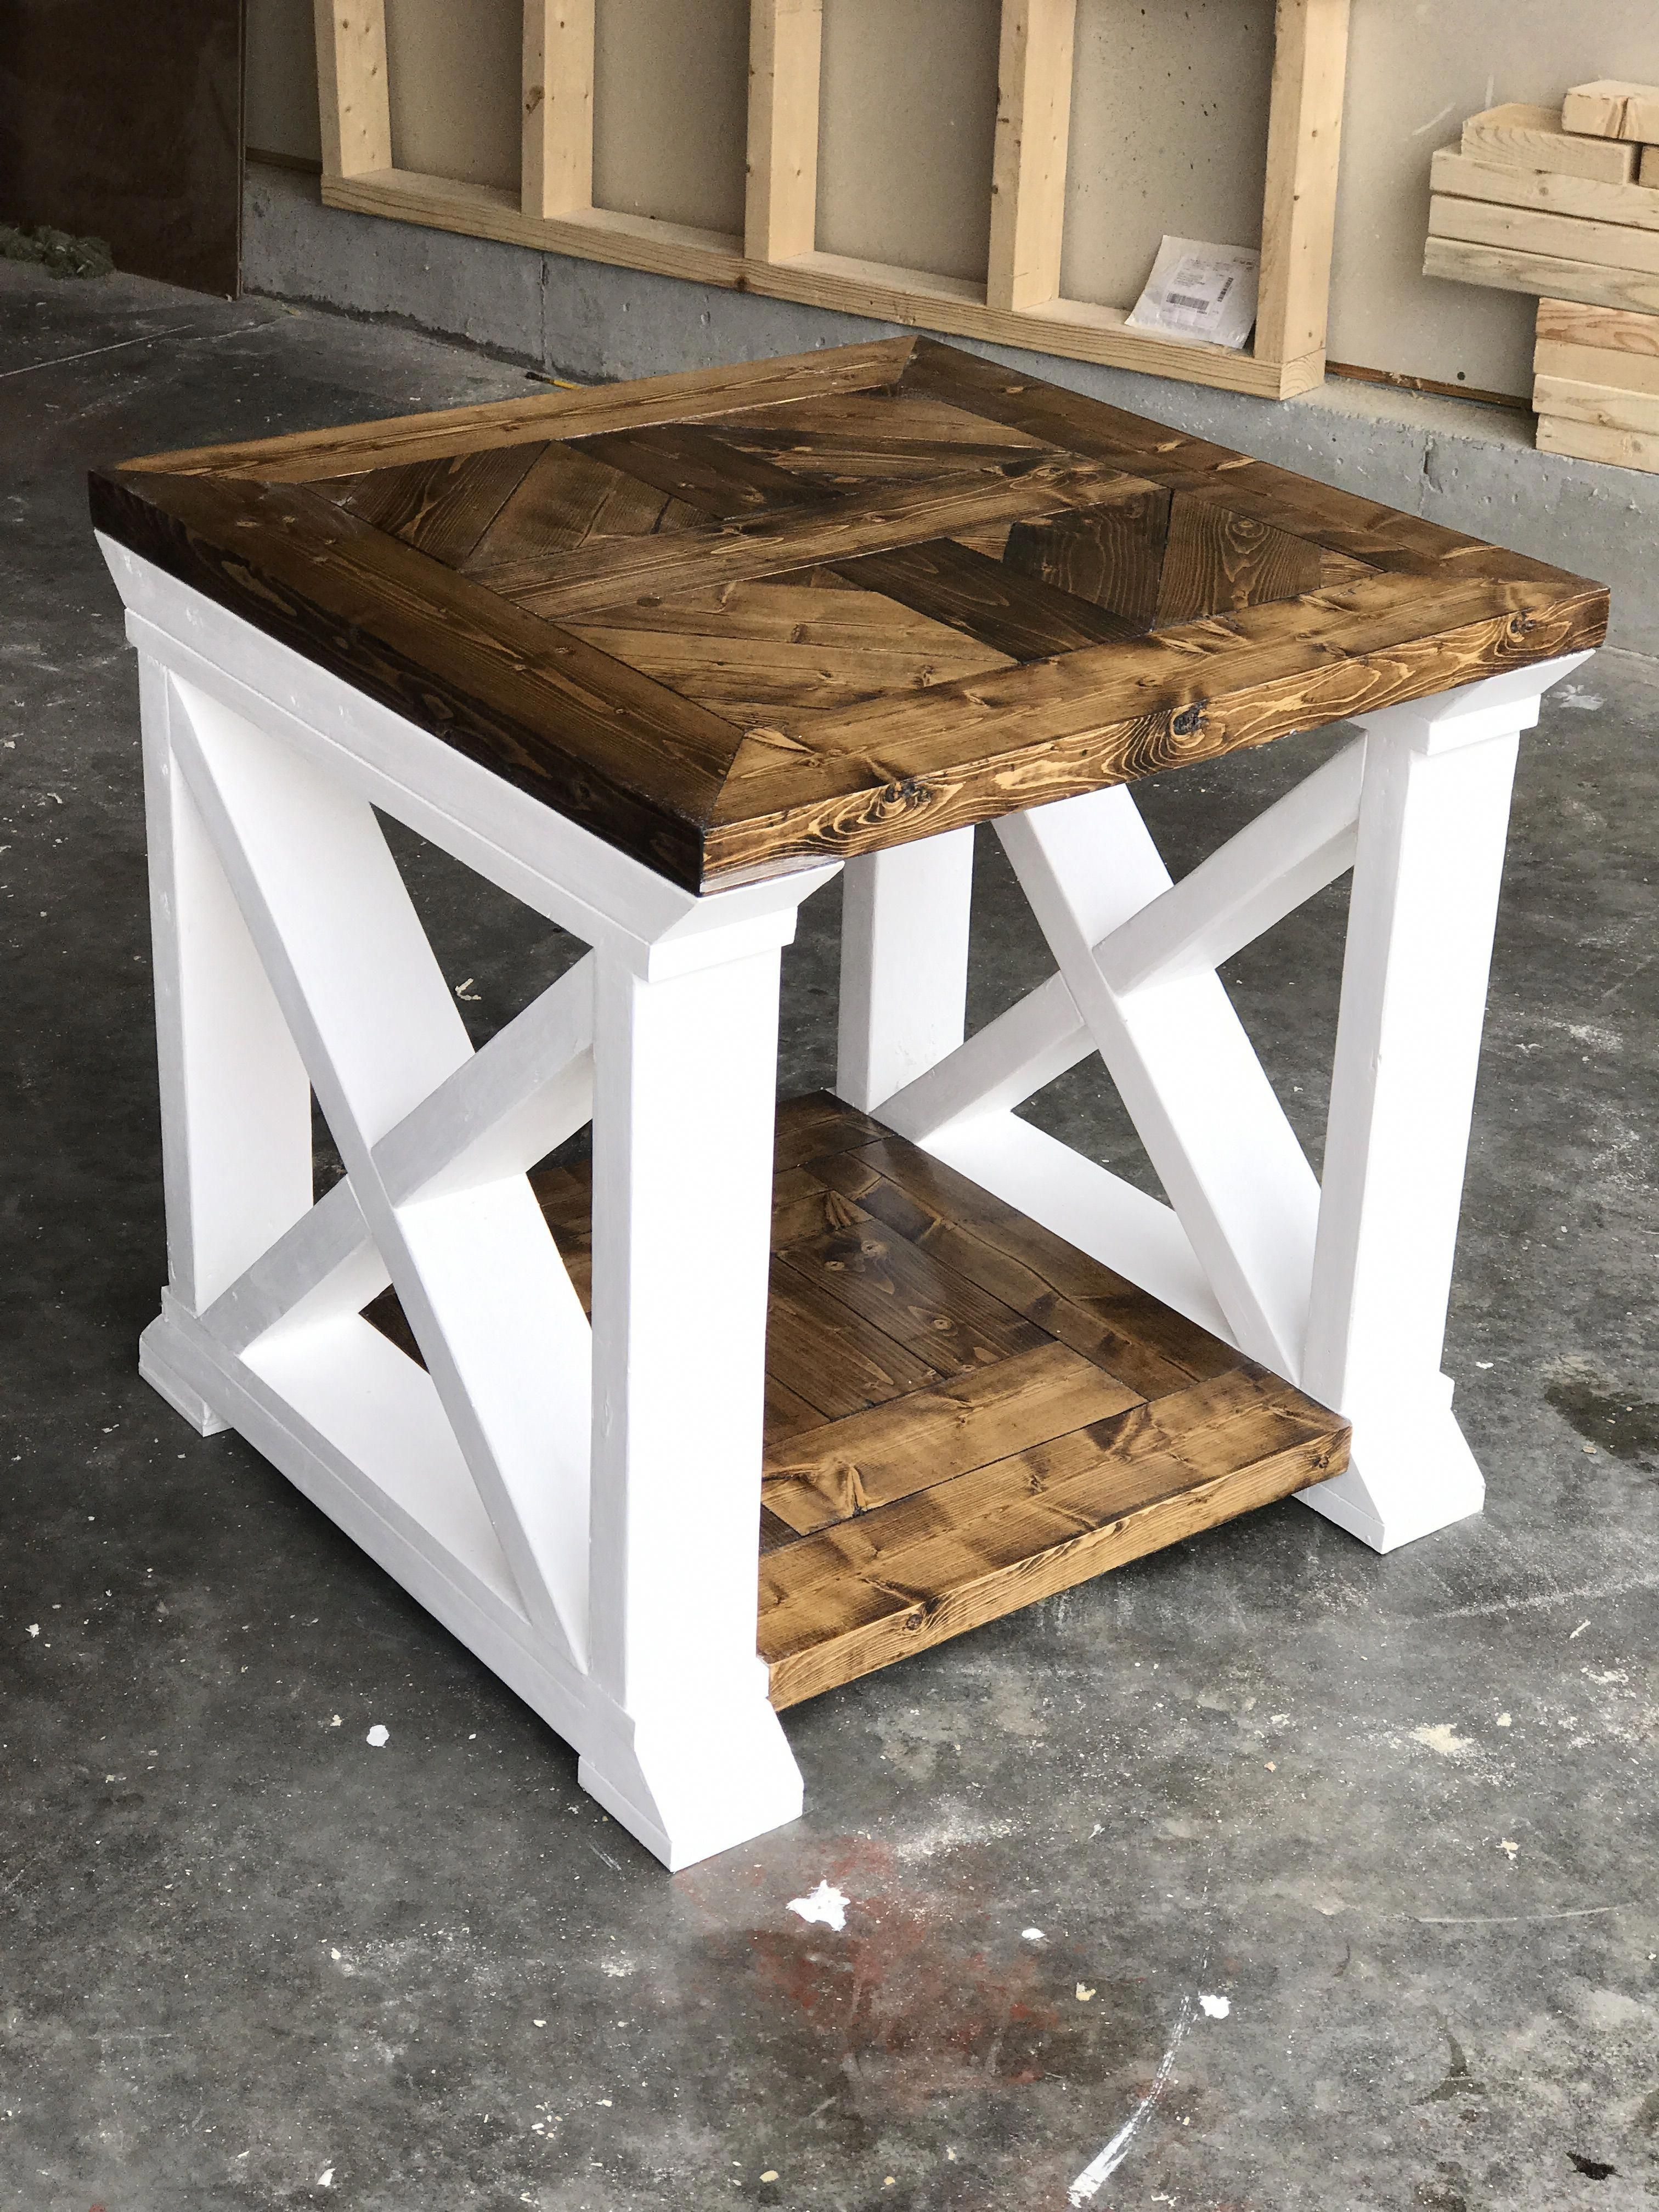 Diy Farm House Coffee Table Made Completely Out Of 2x4 S Awesomeoutdoorwoodworkinggarage Di Woodworking Furniture Plans Wood Table Design Diy Coffee Table